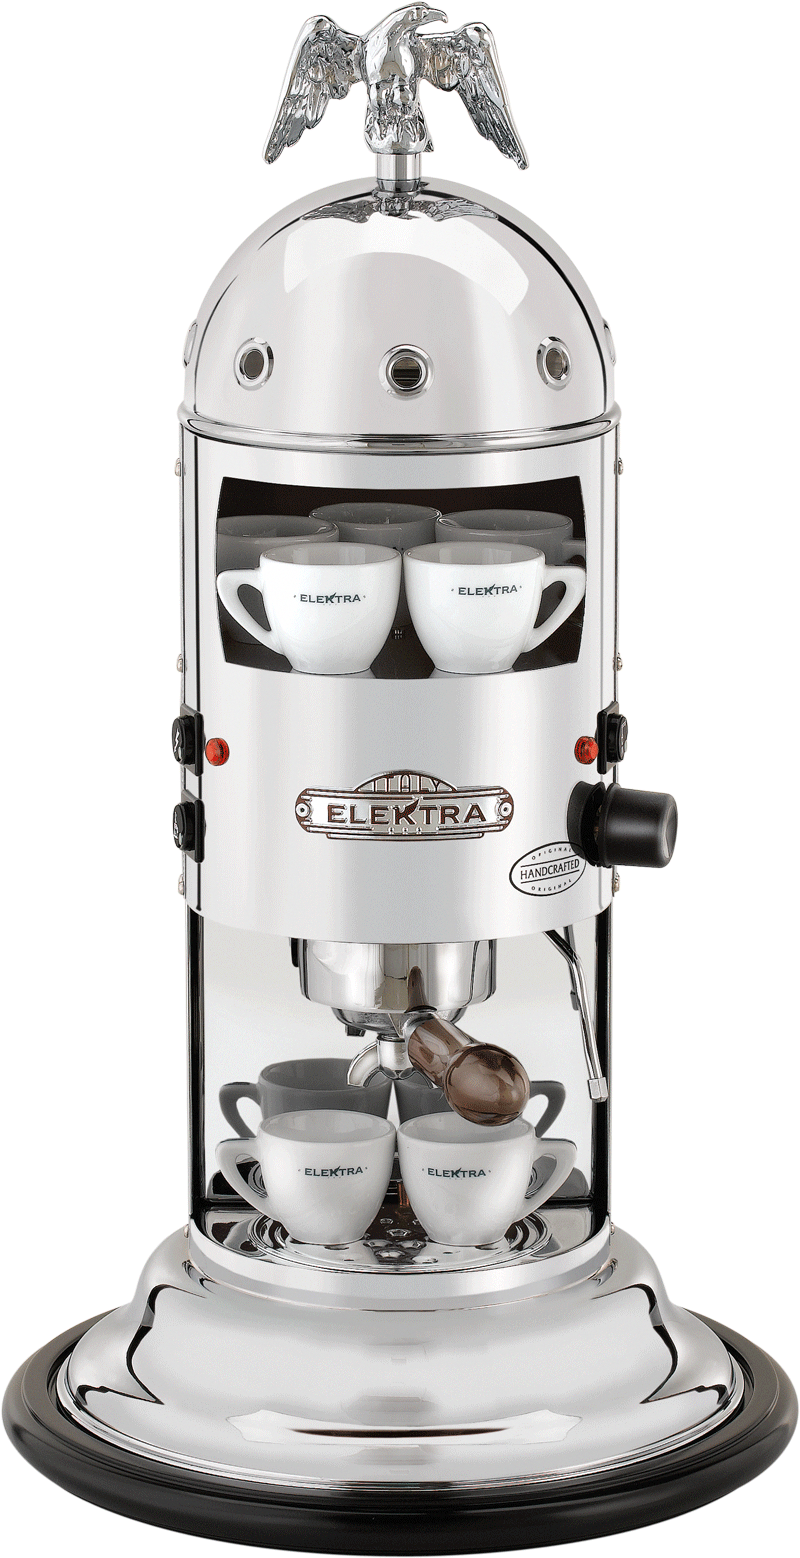 Vertical Home Espresso Machine To Use With Ground Coffee We Also Provide An Adapter Kit For Espress Home Espresso Machine Coffee Machine Best Espresso Machine